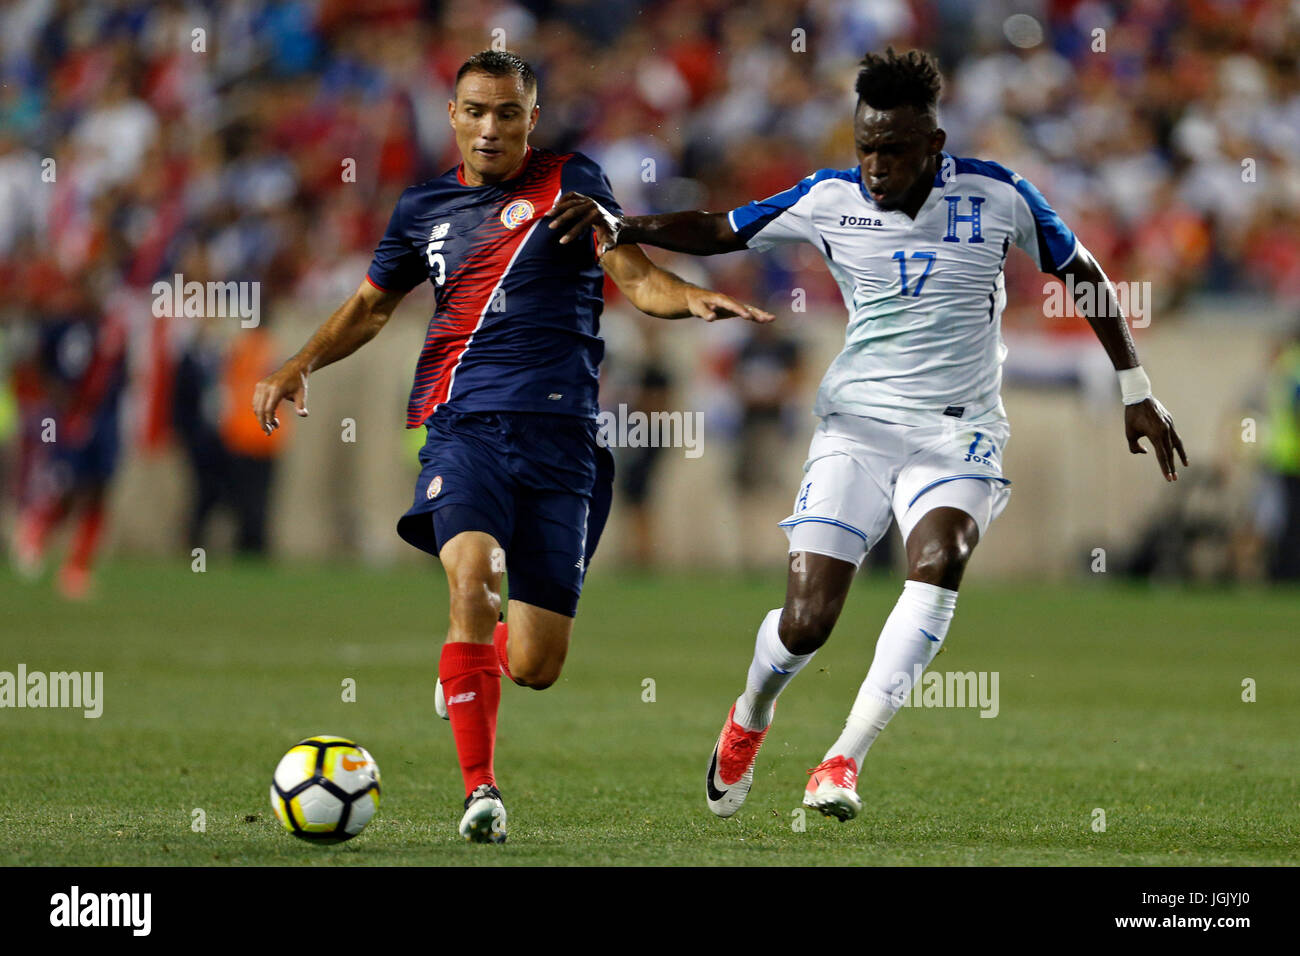 Costa Rica defender Kenner Gutierrez (L) battles for the ball with Honduras forward Alberth Elis during the second - Stock Image